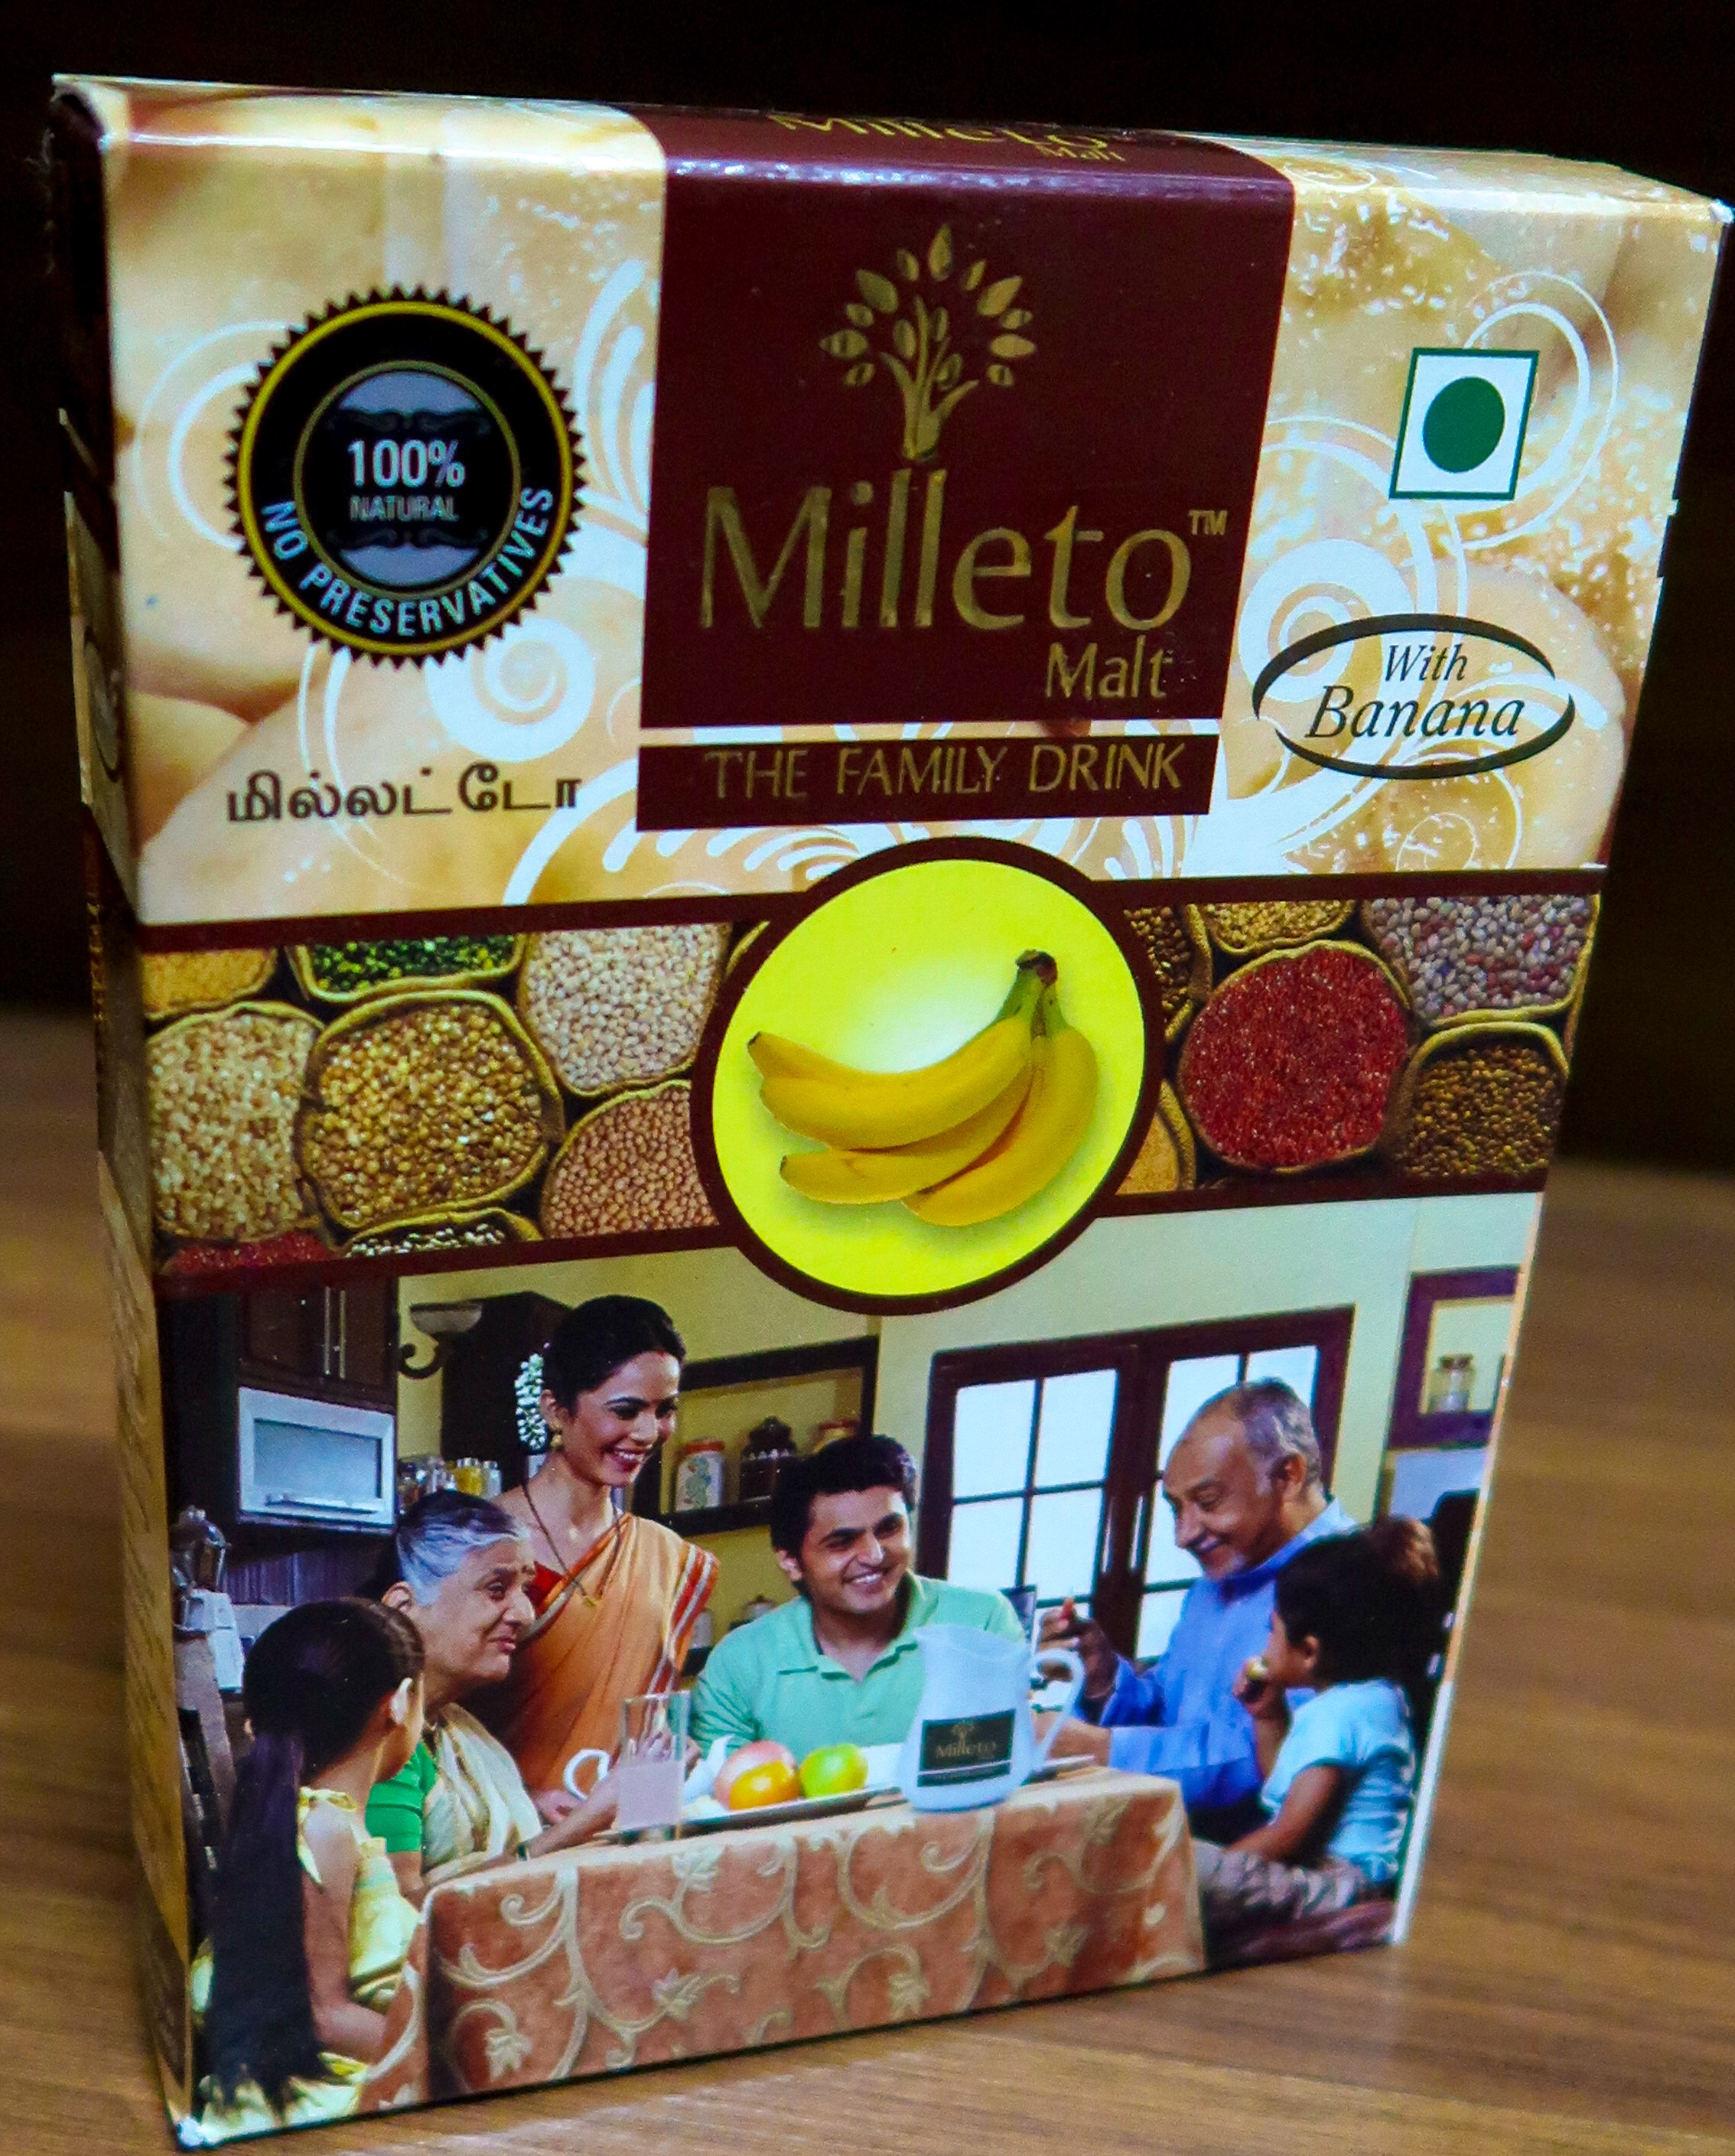 Banana Malt by Milleto, Adhisurya Foods